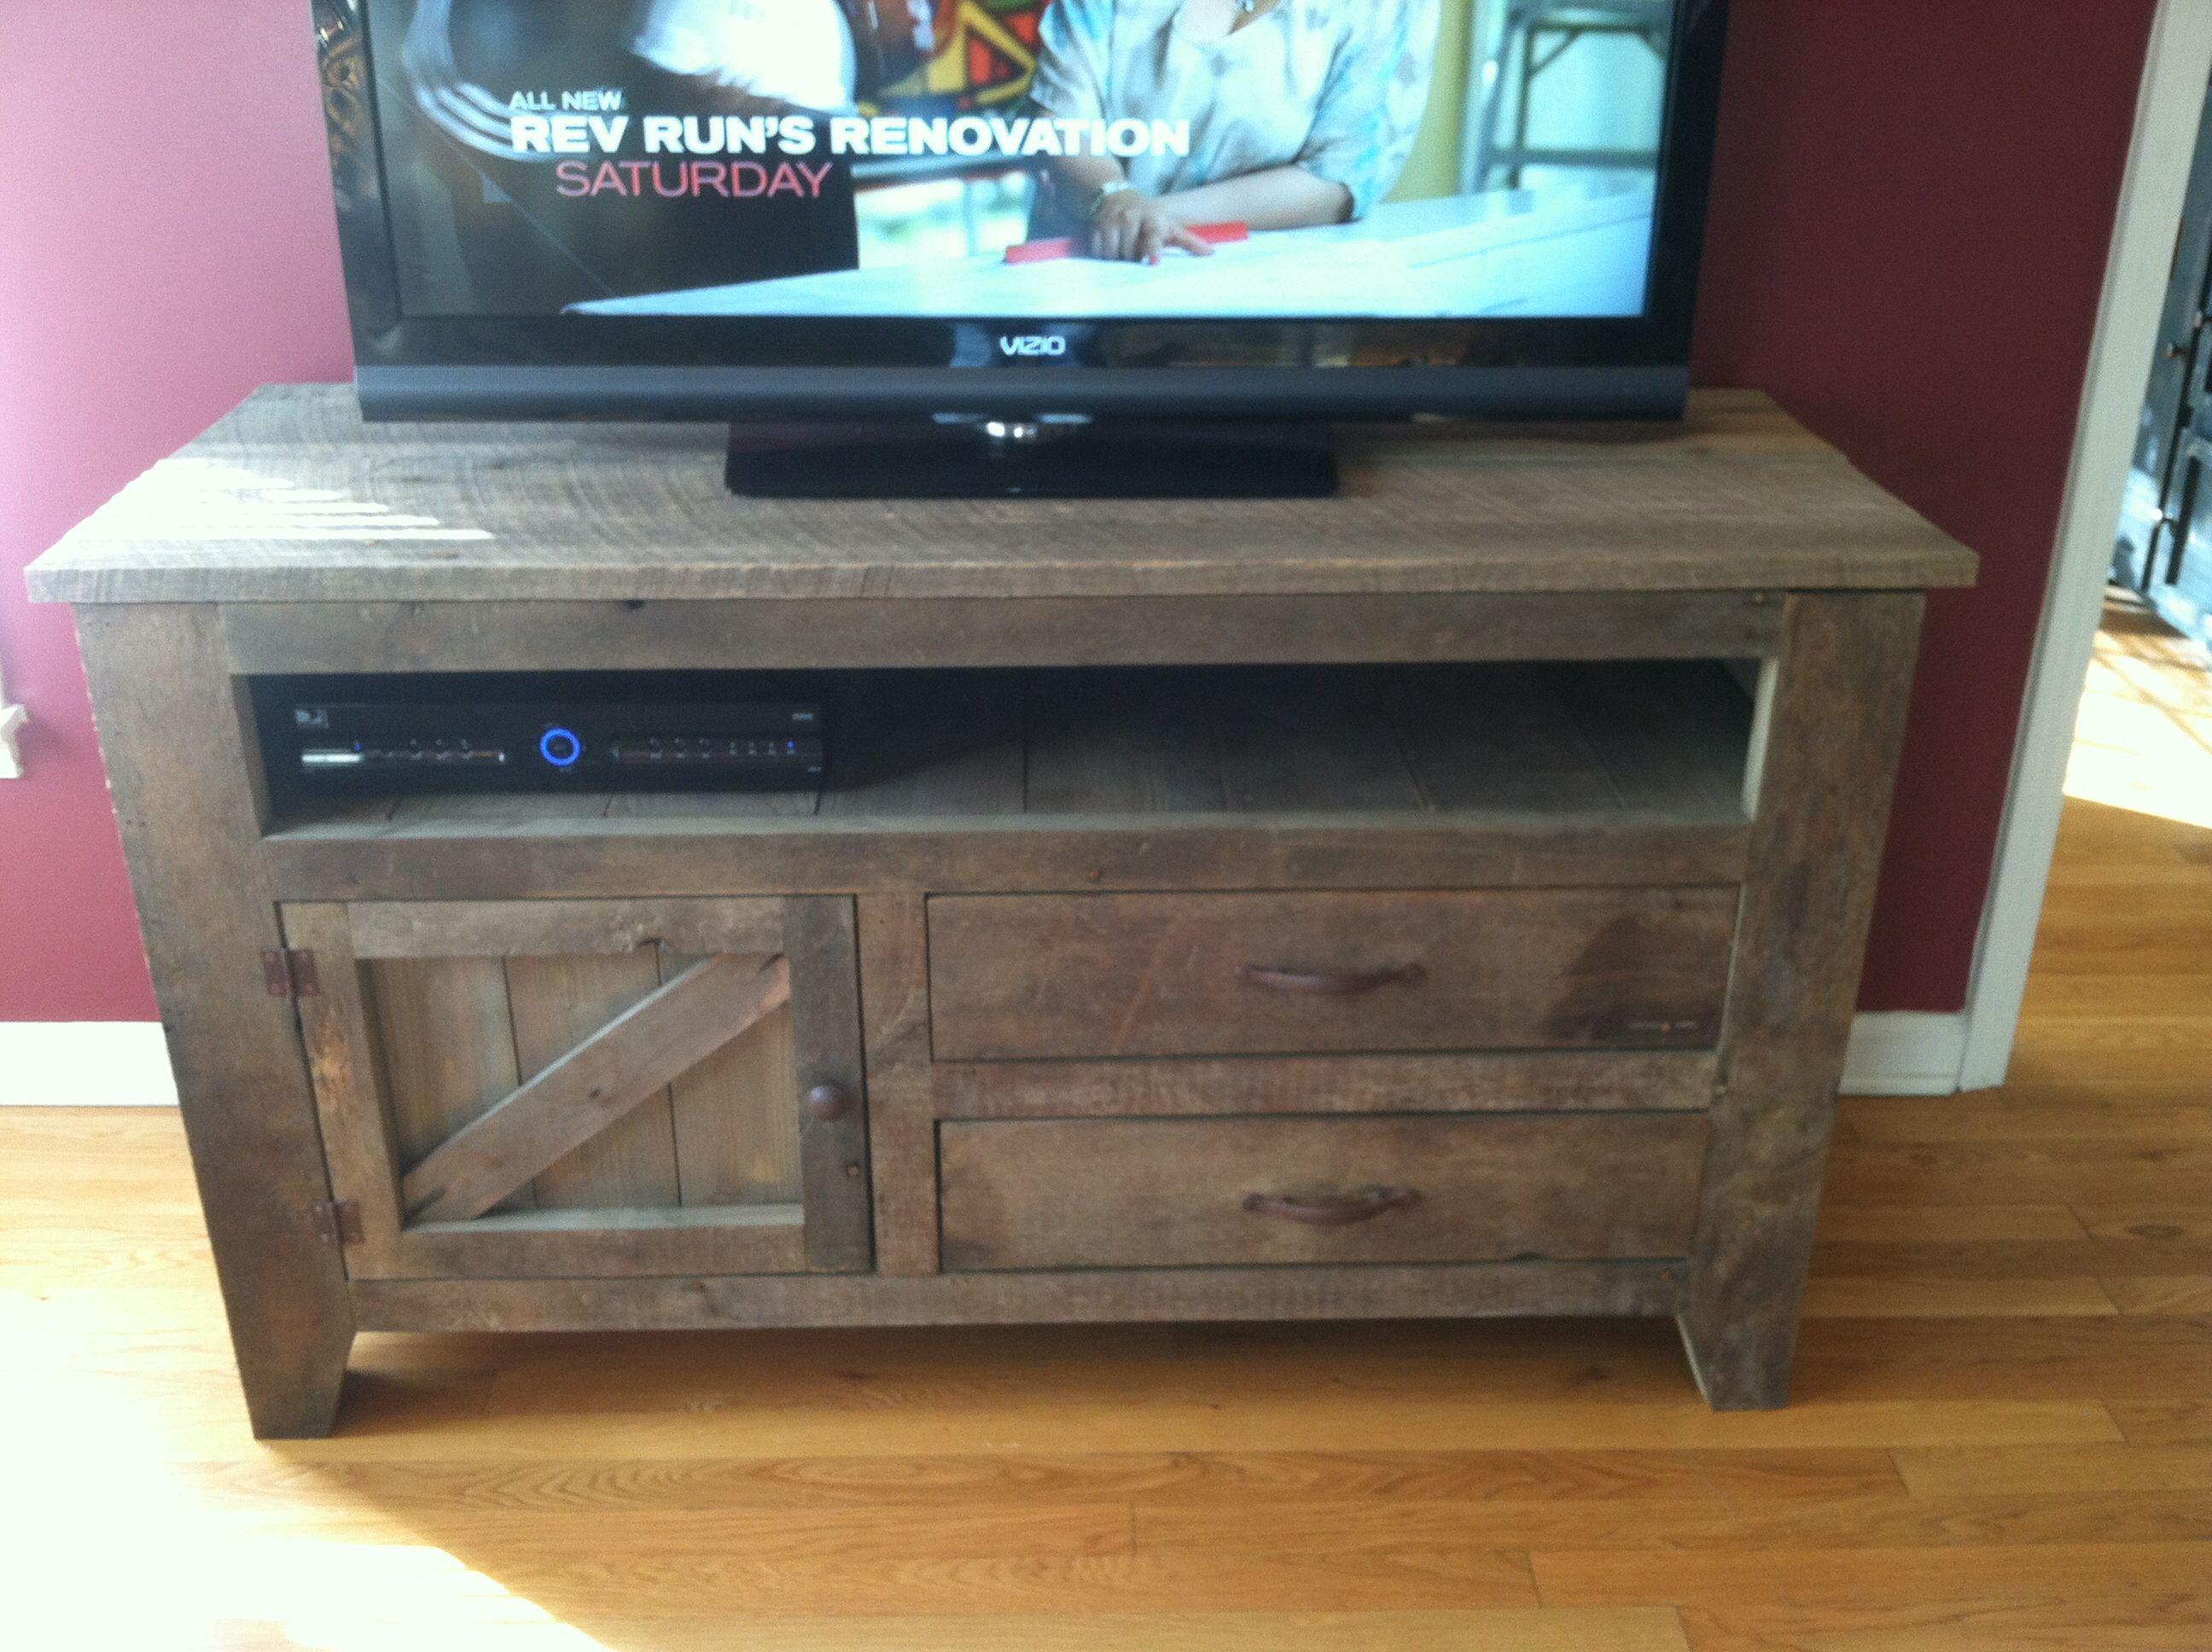 Reclaimed Wood Tv Stand With Two Drawers And A Storage Bin Below Open  Housing For Electronic